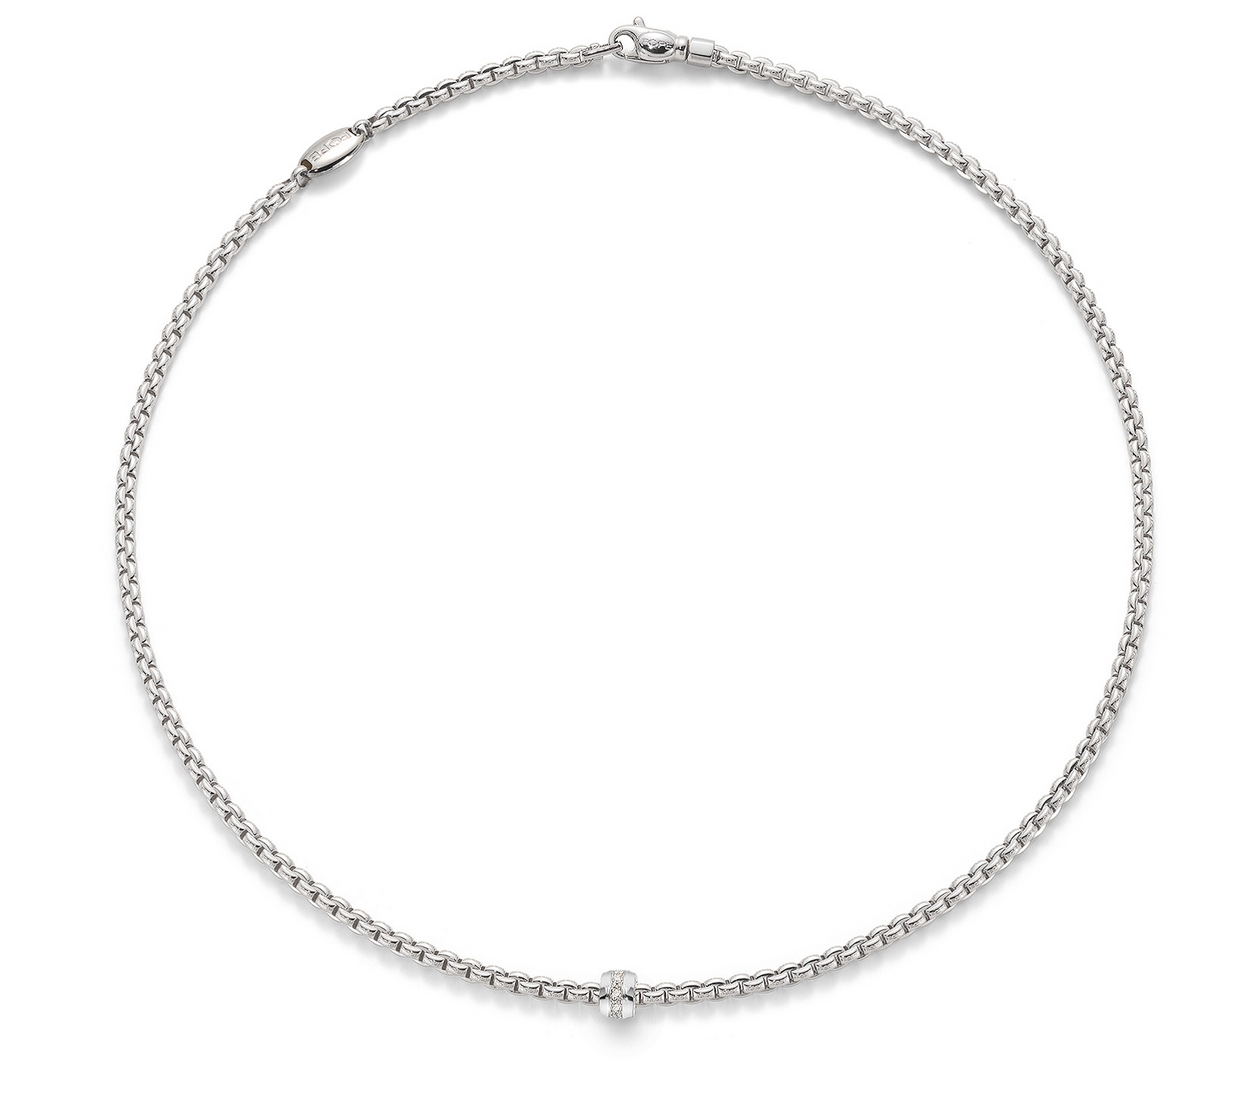 FOPE Eka Tiny Diamond Necklace in 18ct White Gold (43cm) - Hamilton & Inches